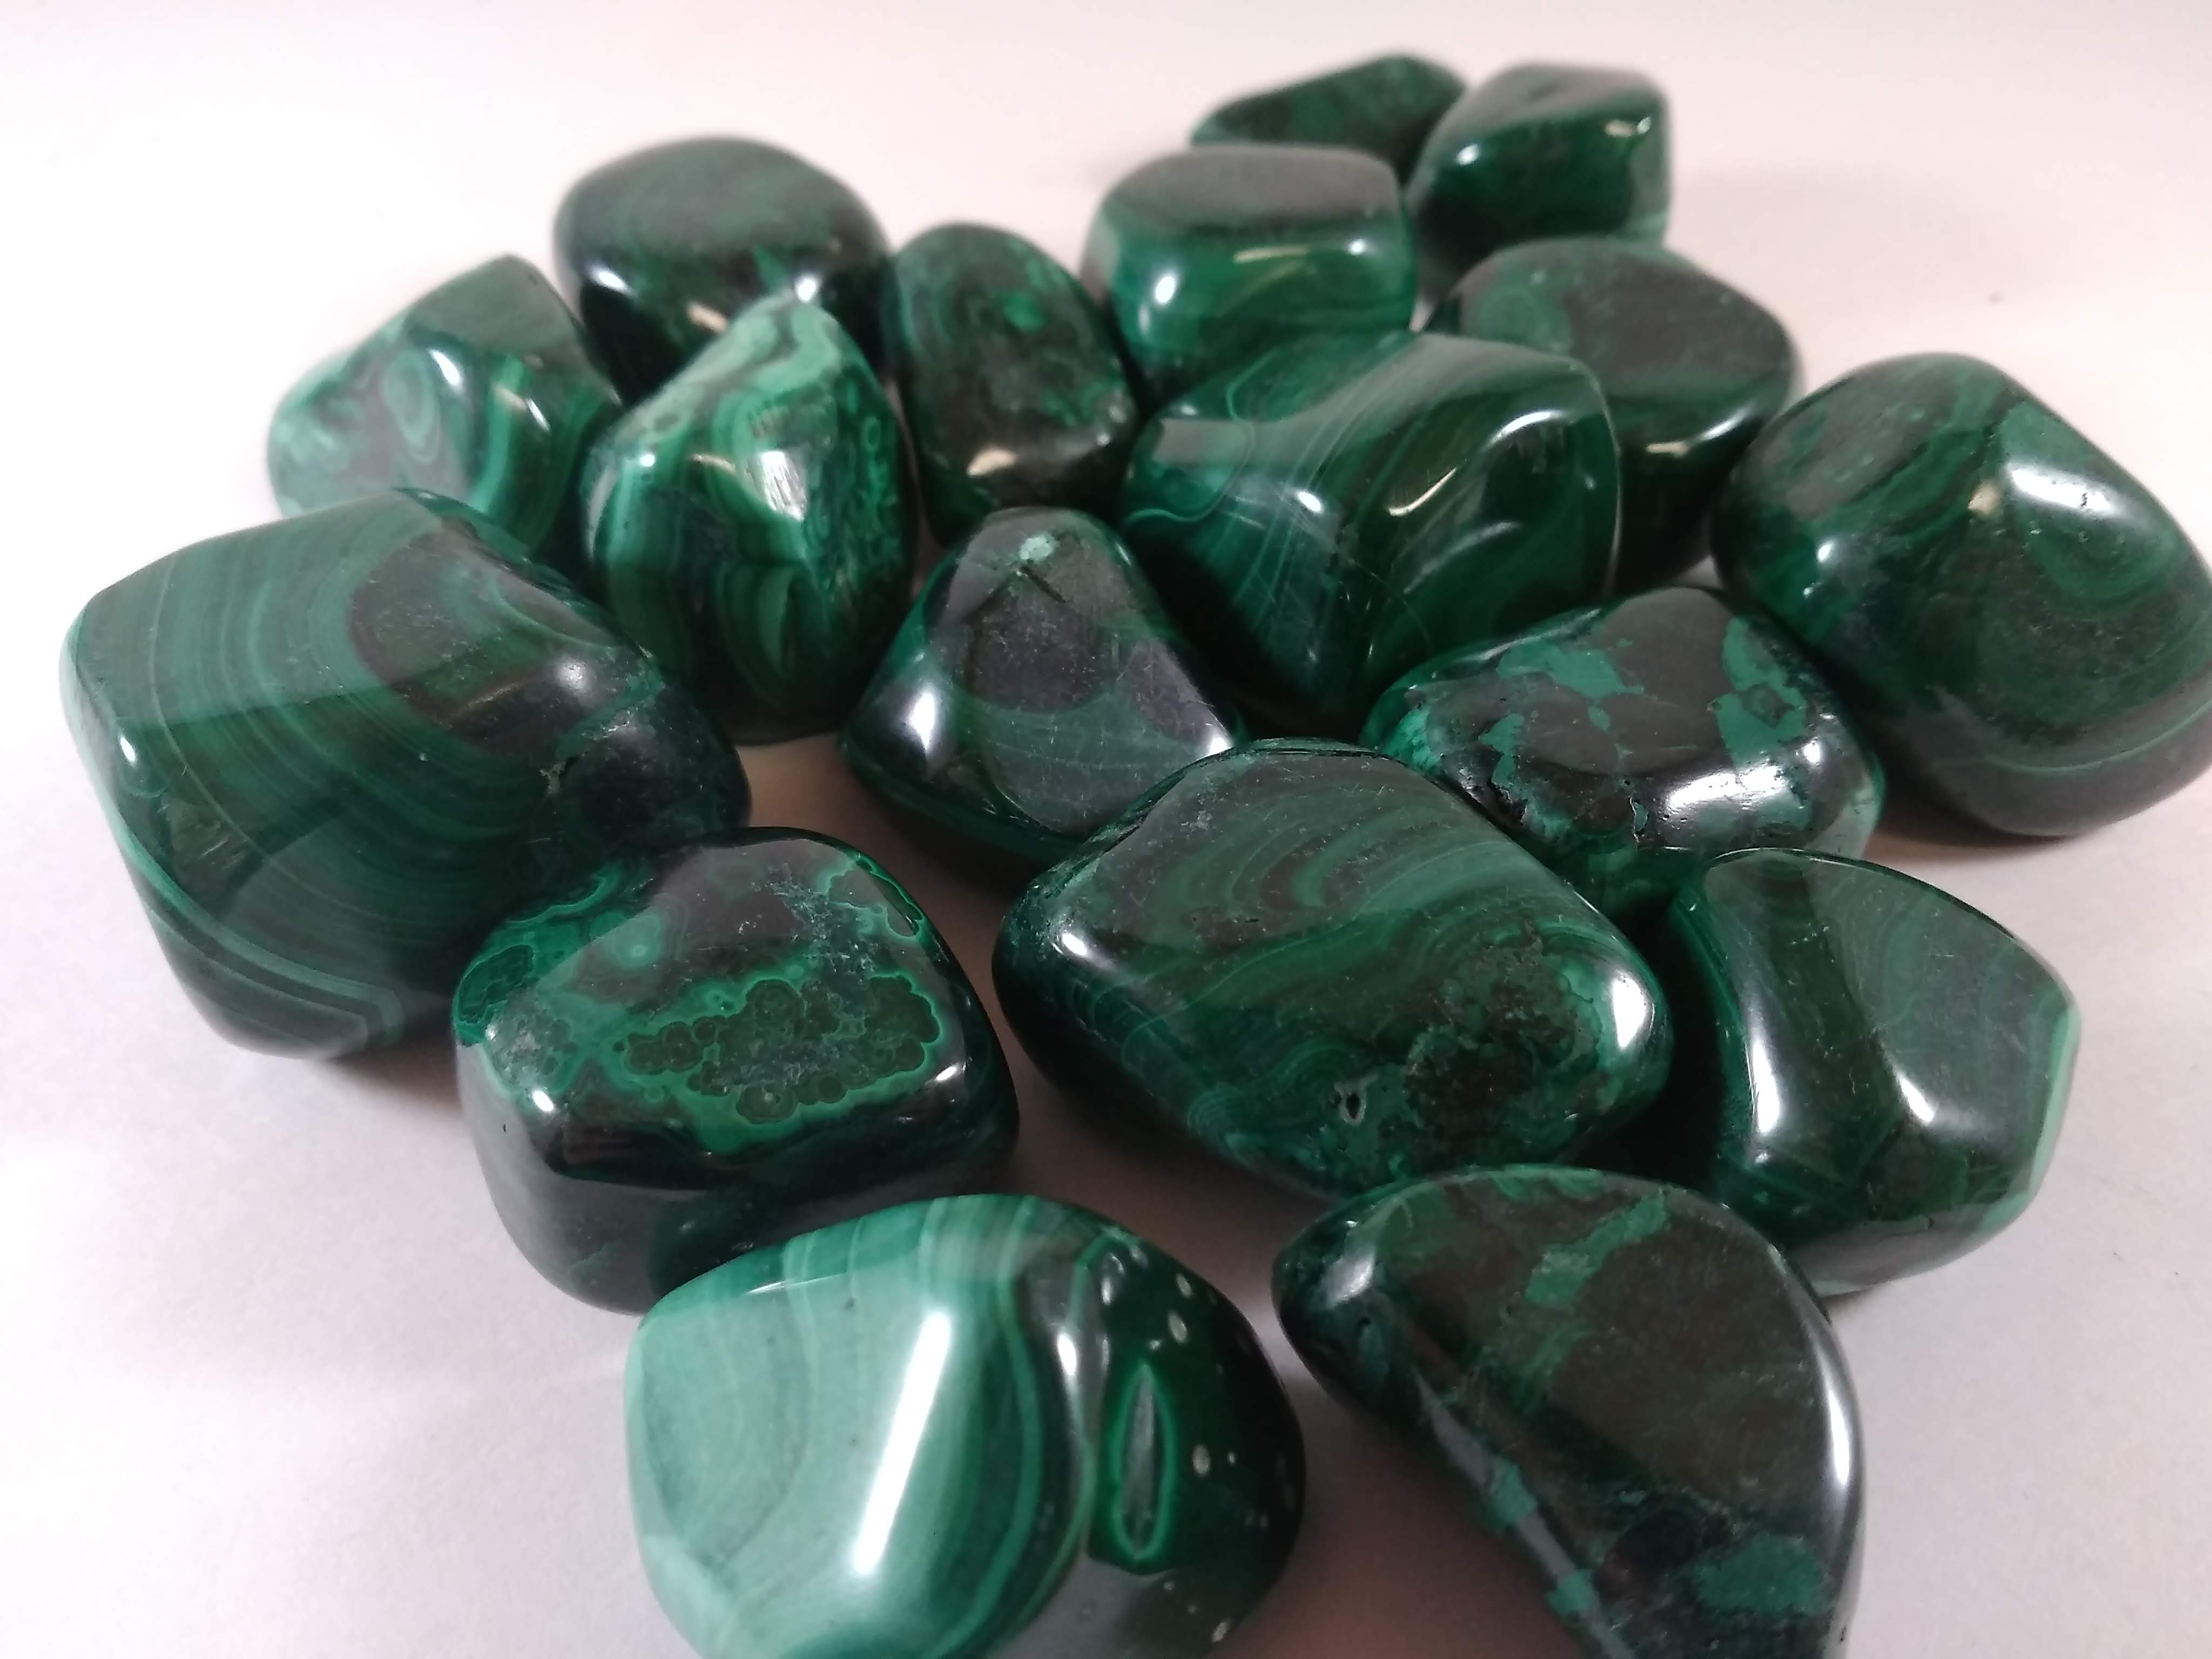 New Earth Stones and Uses - M